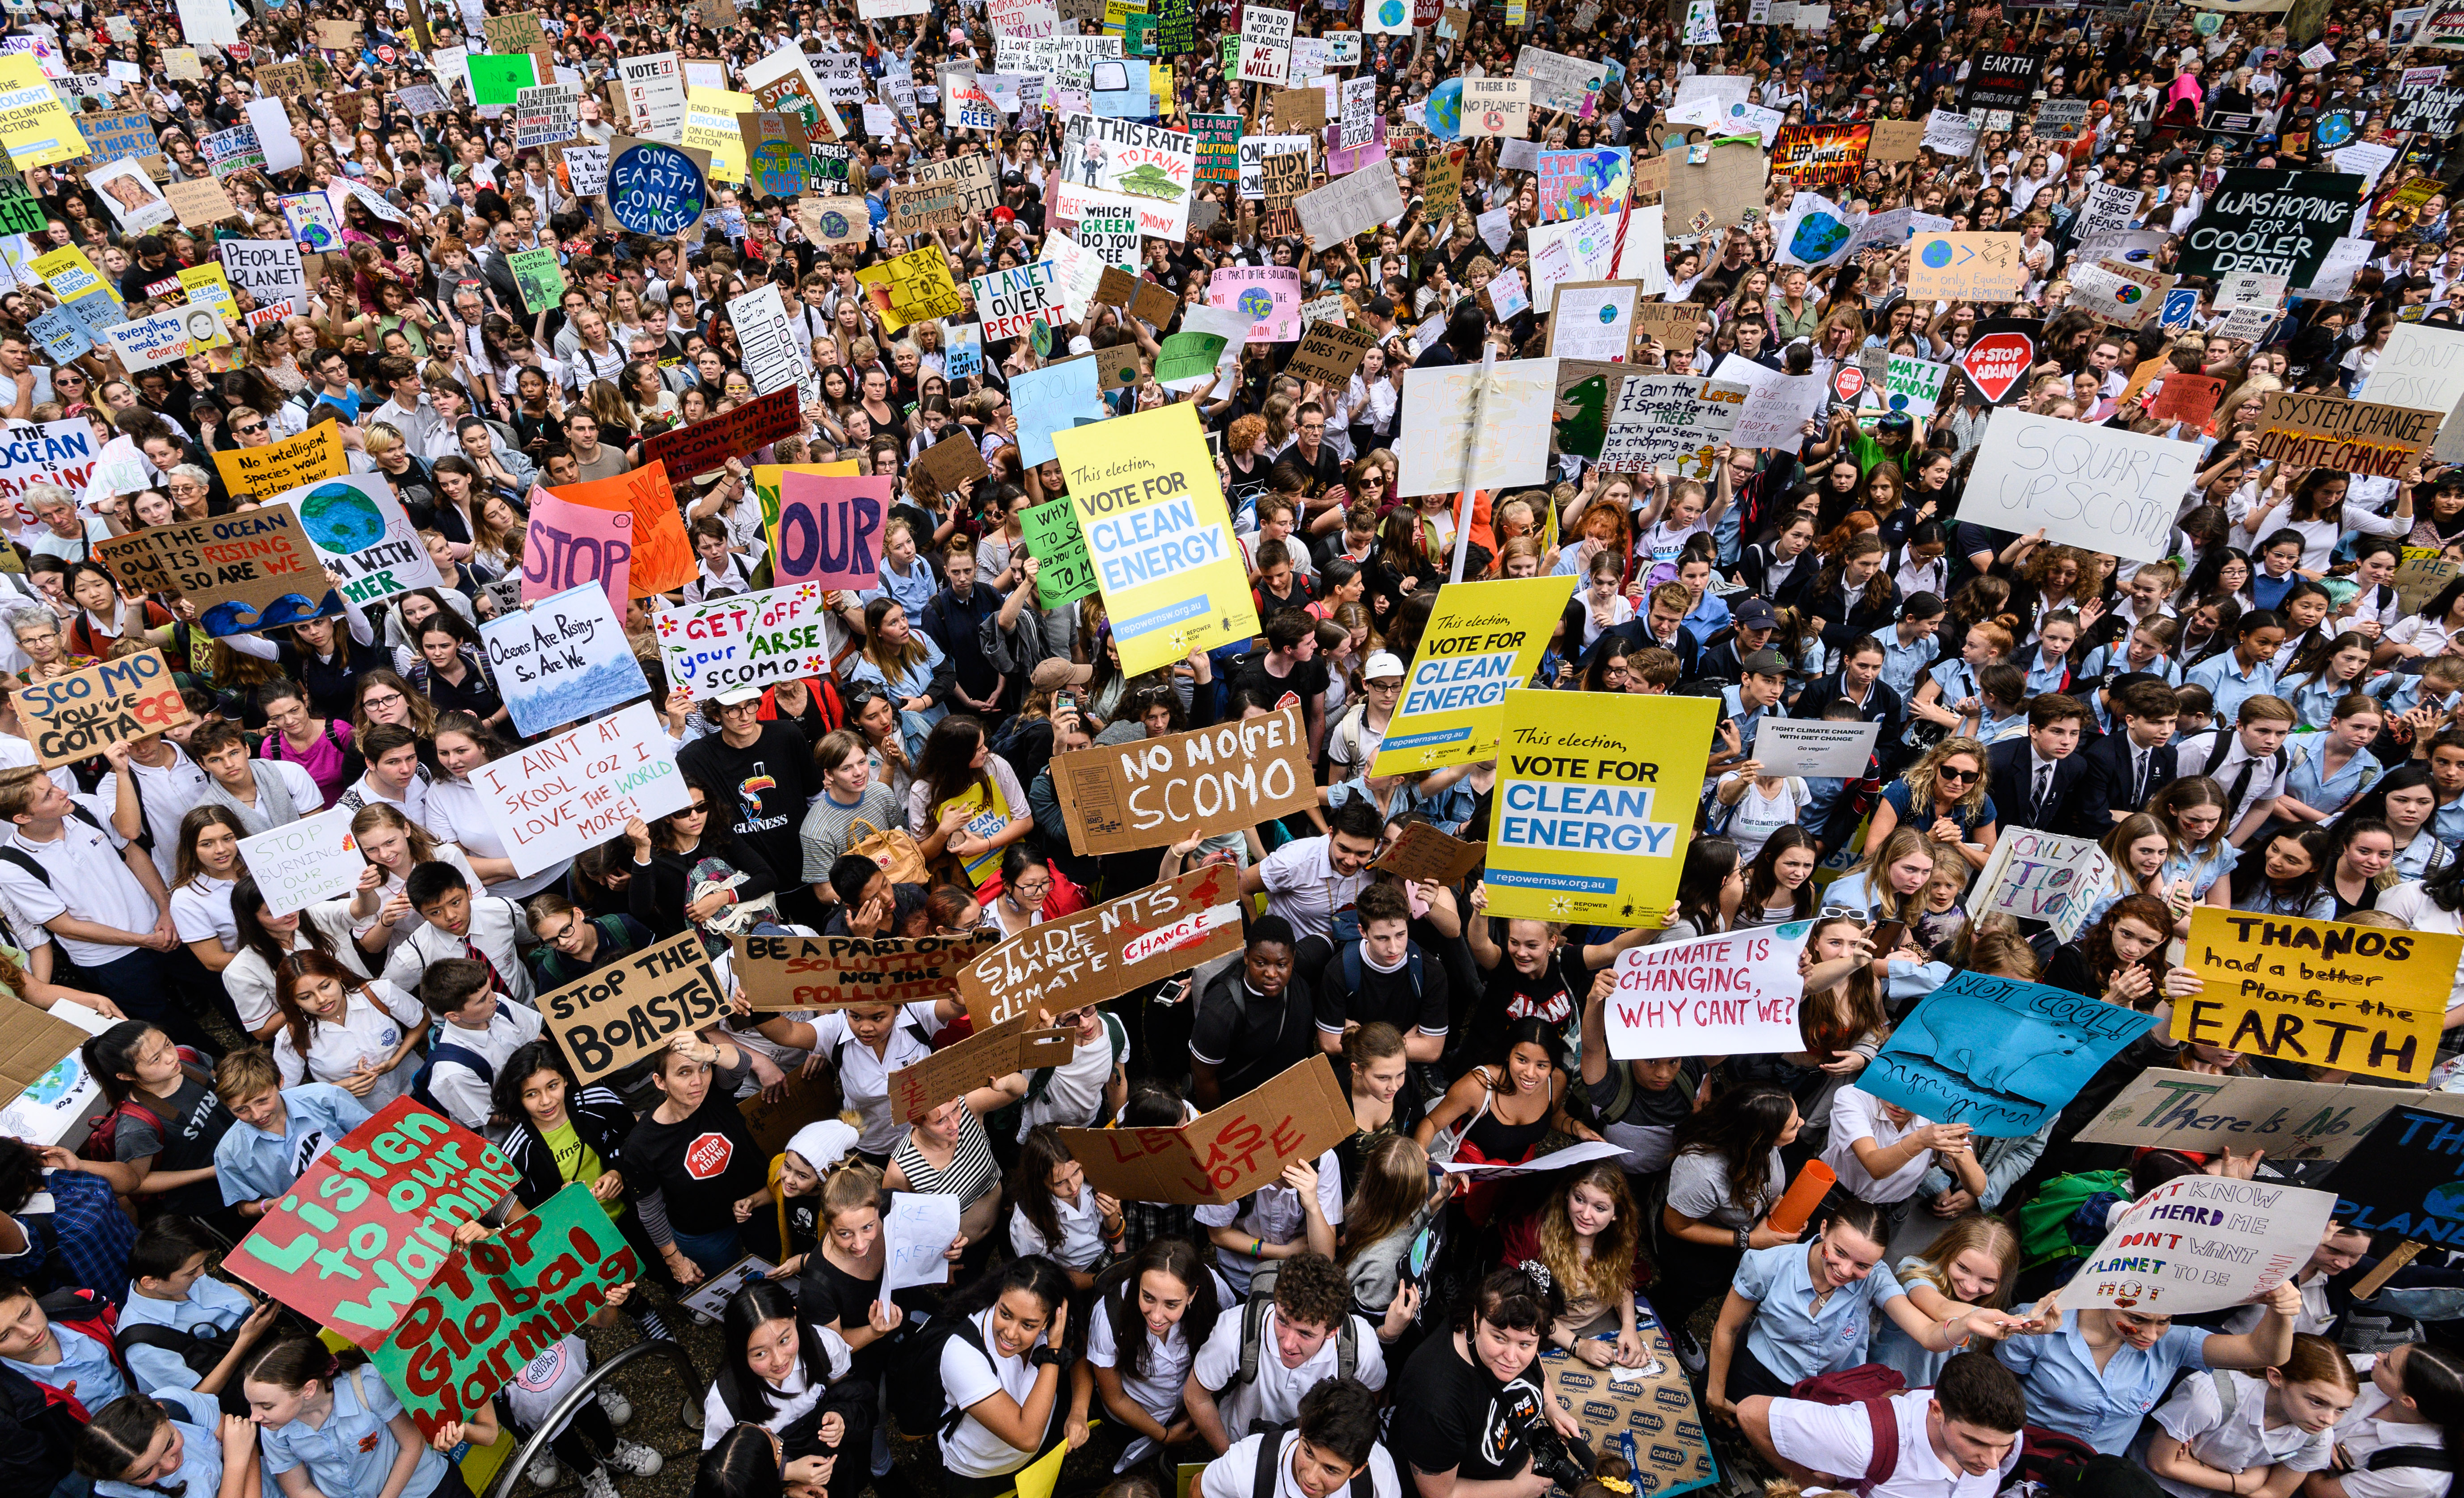 SYDNEY, AUSTRALIA - MARCH 15: Protesters during a Climate Change Awareness March on March 15, 2019 outside Sydney Town Hall, Australia. The protests are part of a global climate strike, urging politicians to take urgent action on climate change. James Gourley/Getty Images